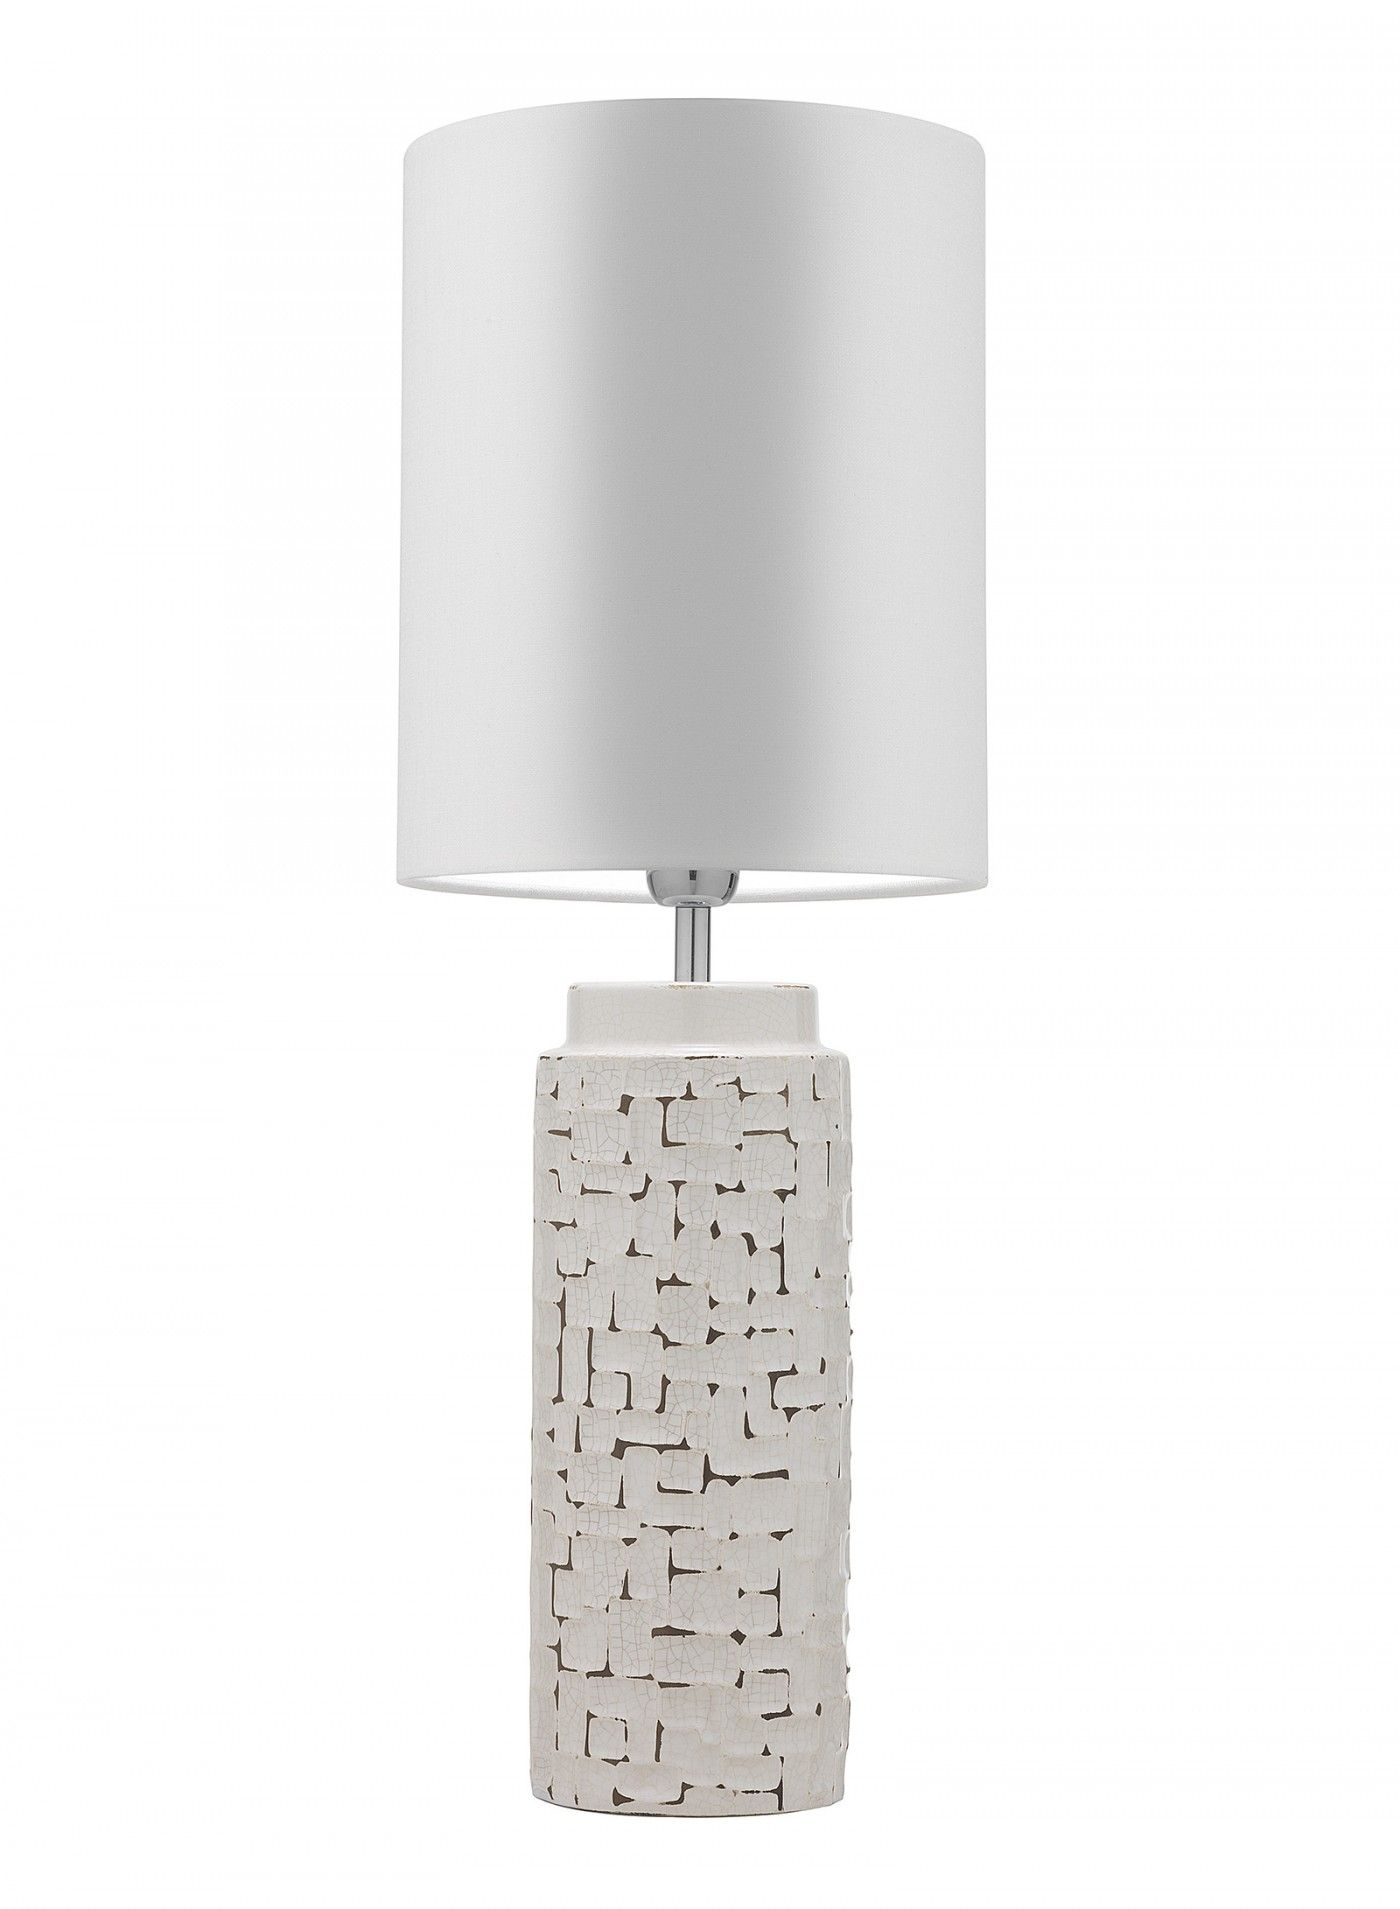 Woodstock ivory table lamp heathfield co pinterest woodstock ivory table lamp the woodstock table lamp range is enhanced with detailed texture and vibrant glazes mozeypictures Gallery